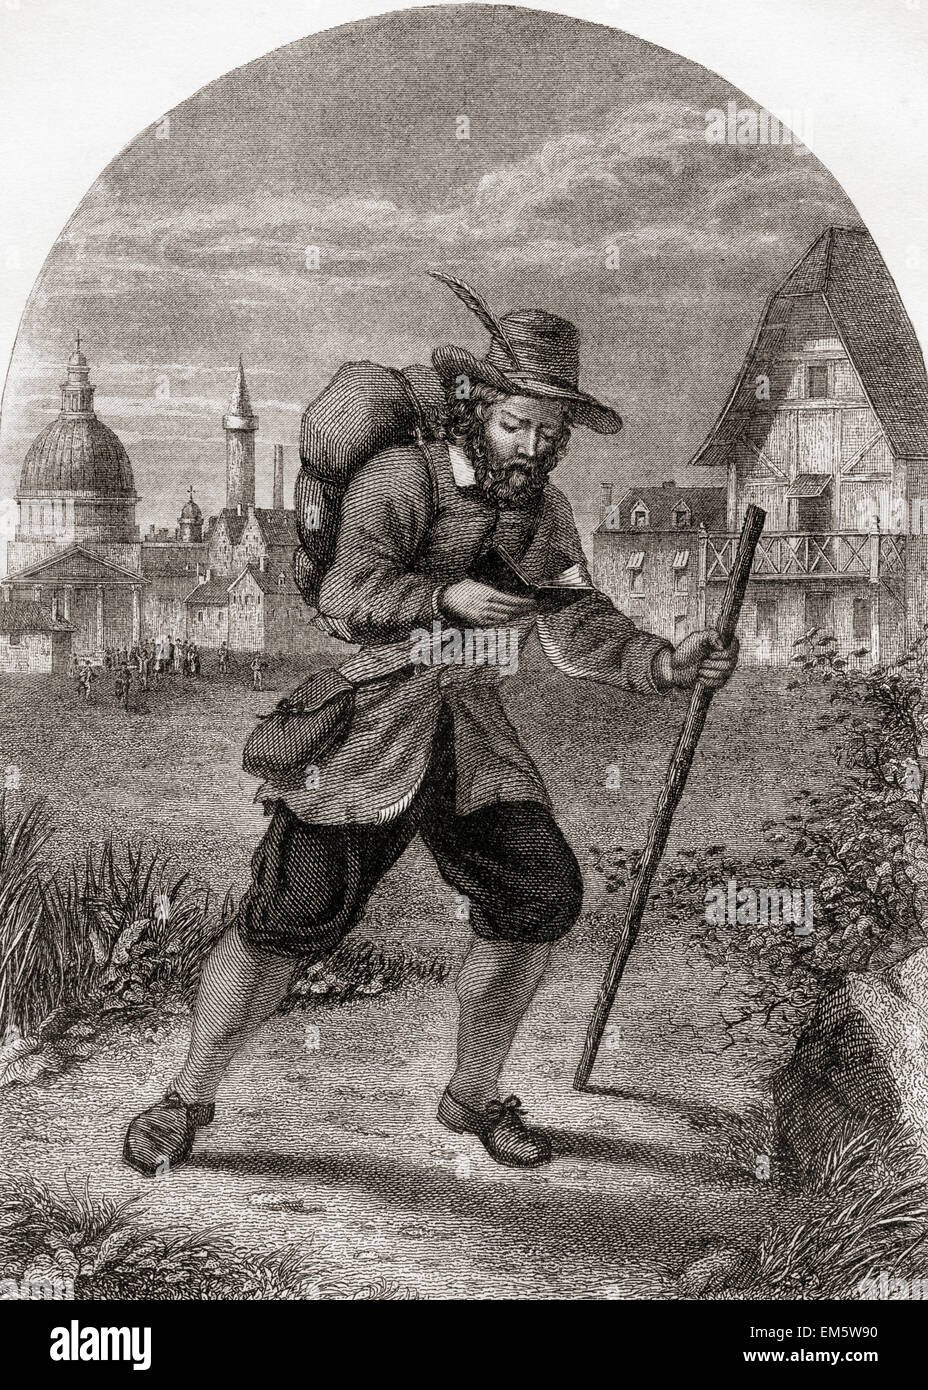 Christian Leaving the City of Destruction.  From The Pilgrim's Progress by John Bunyan. - Stock Image